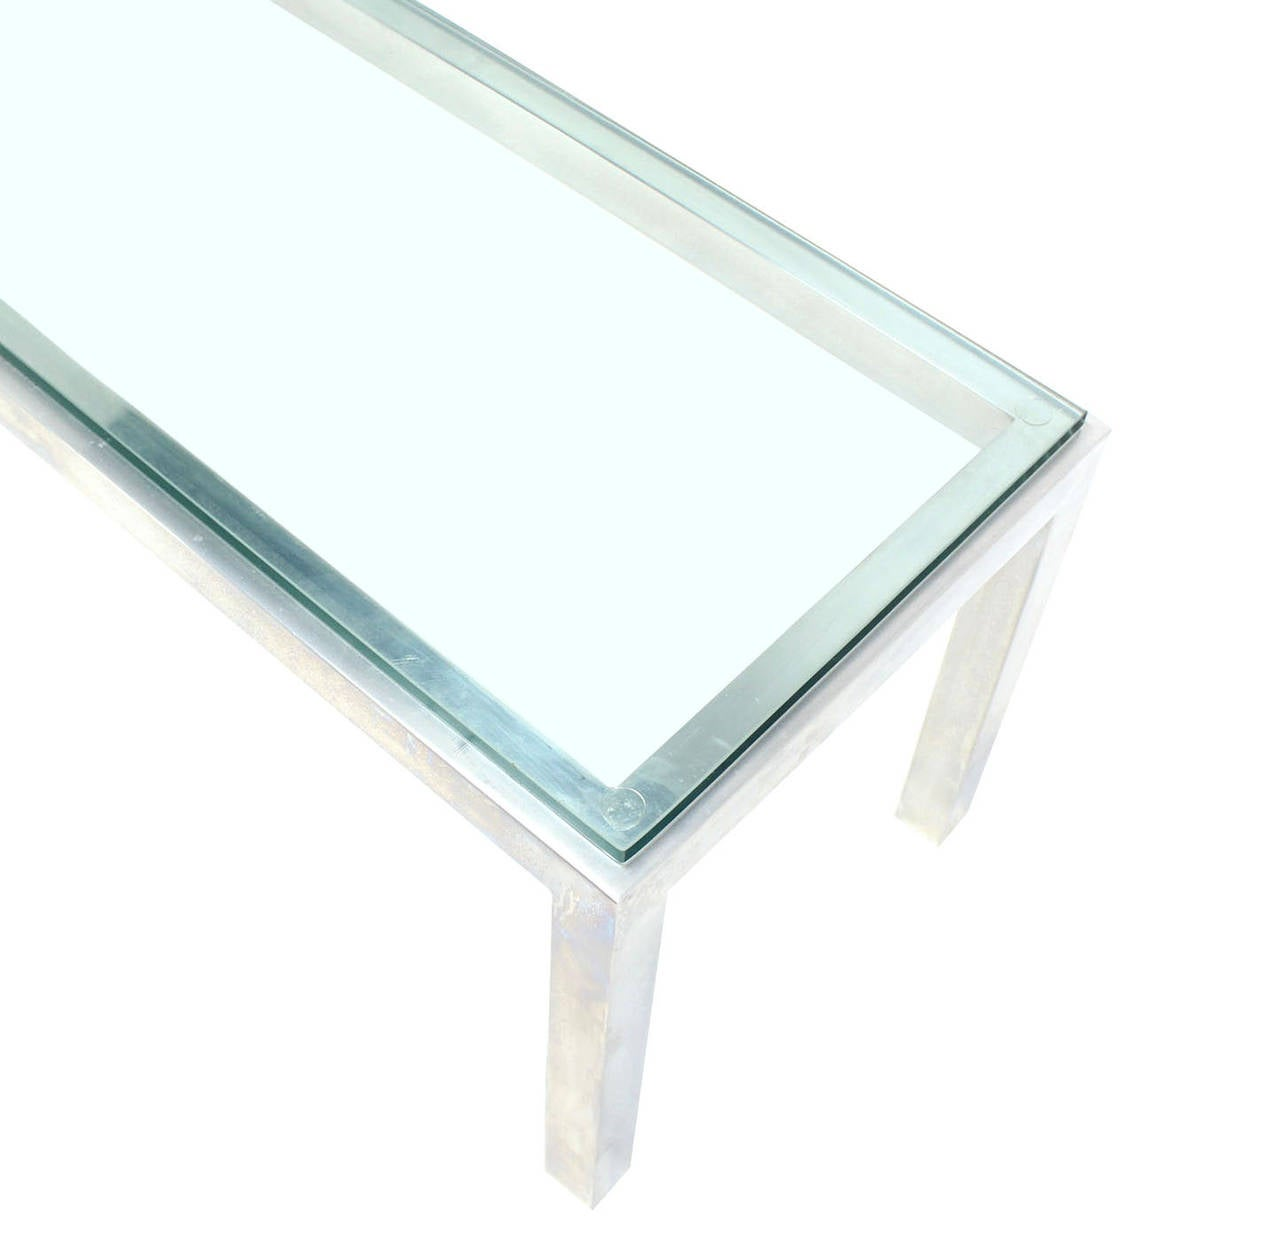 Https Www 1stdibs Com Furniture Tables Coffee Tables Cocktail Tables Aluminum Metal Frame Small Coffee Table Id F 2304432